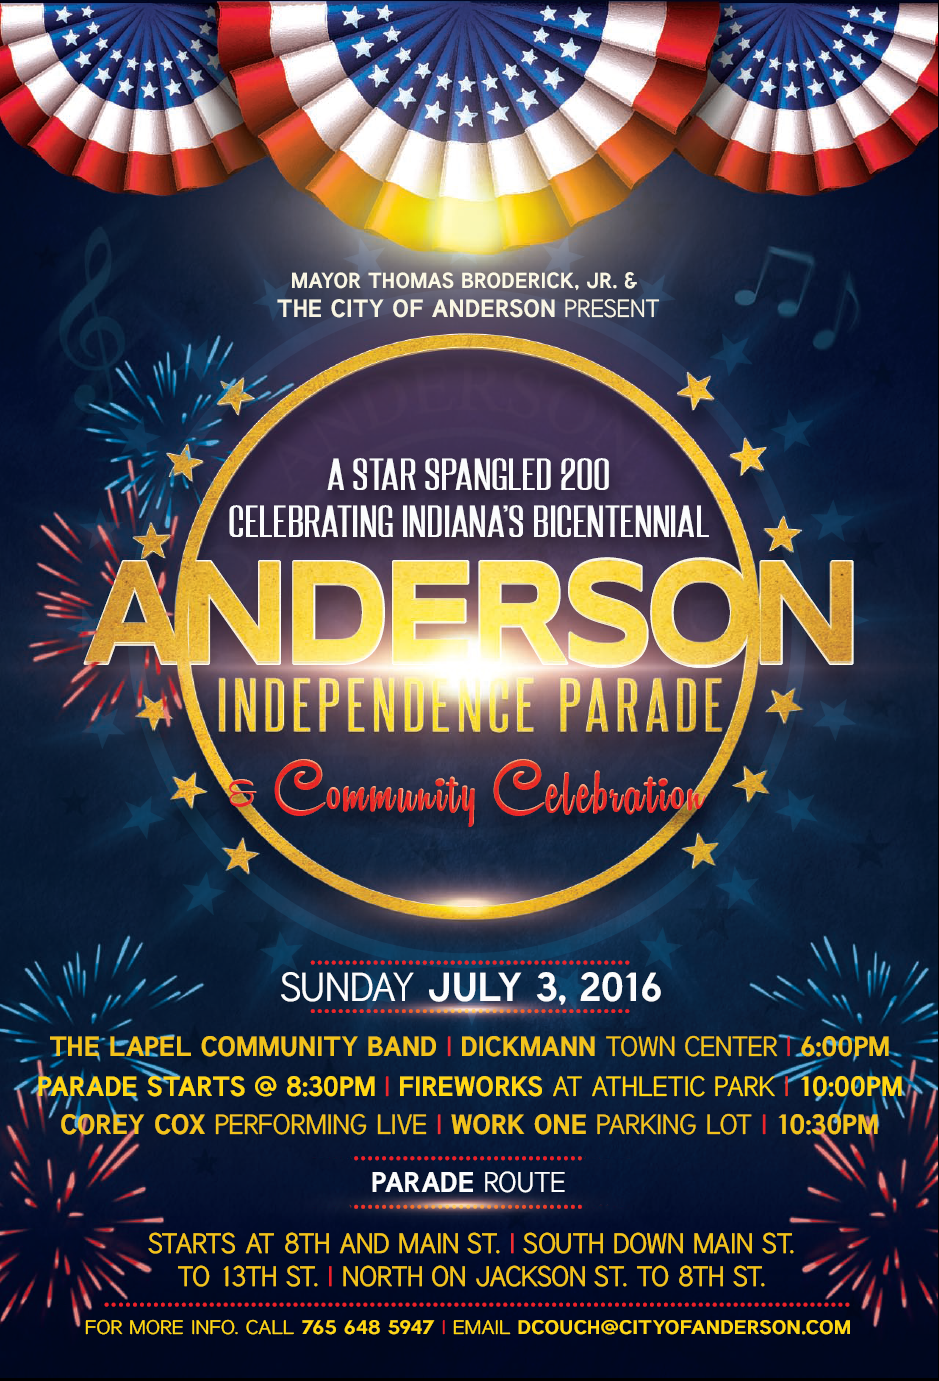 parade flyer png